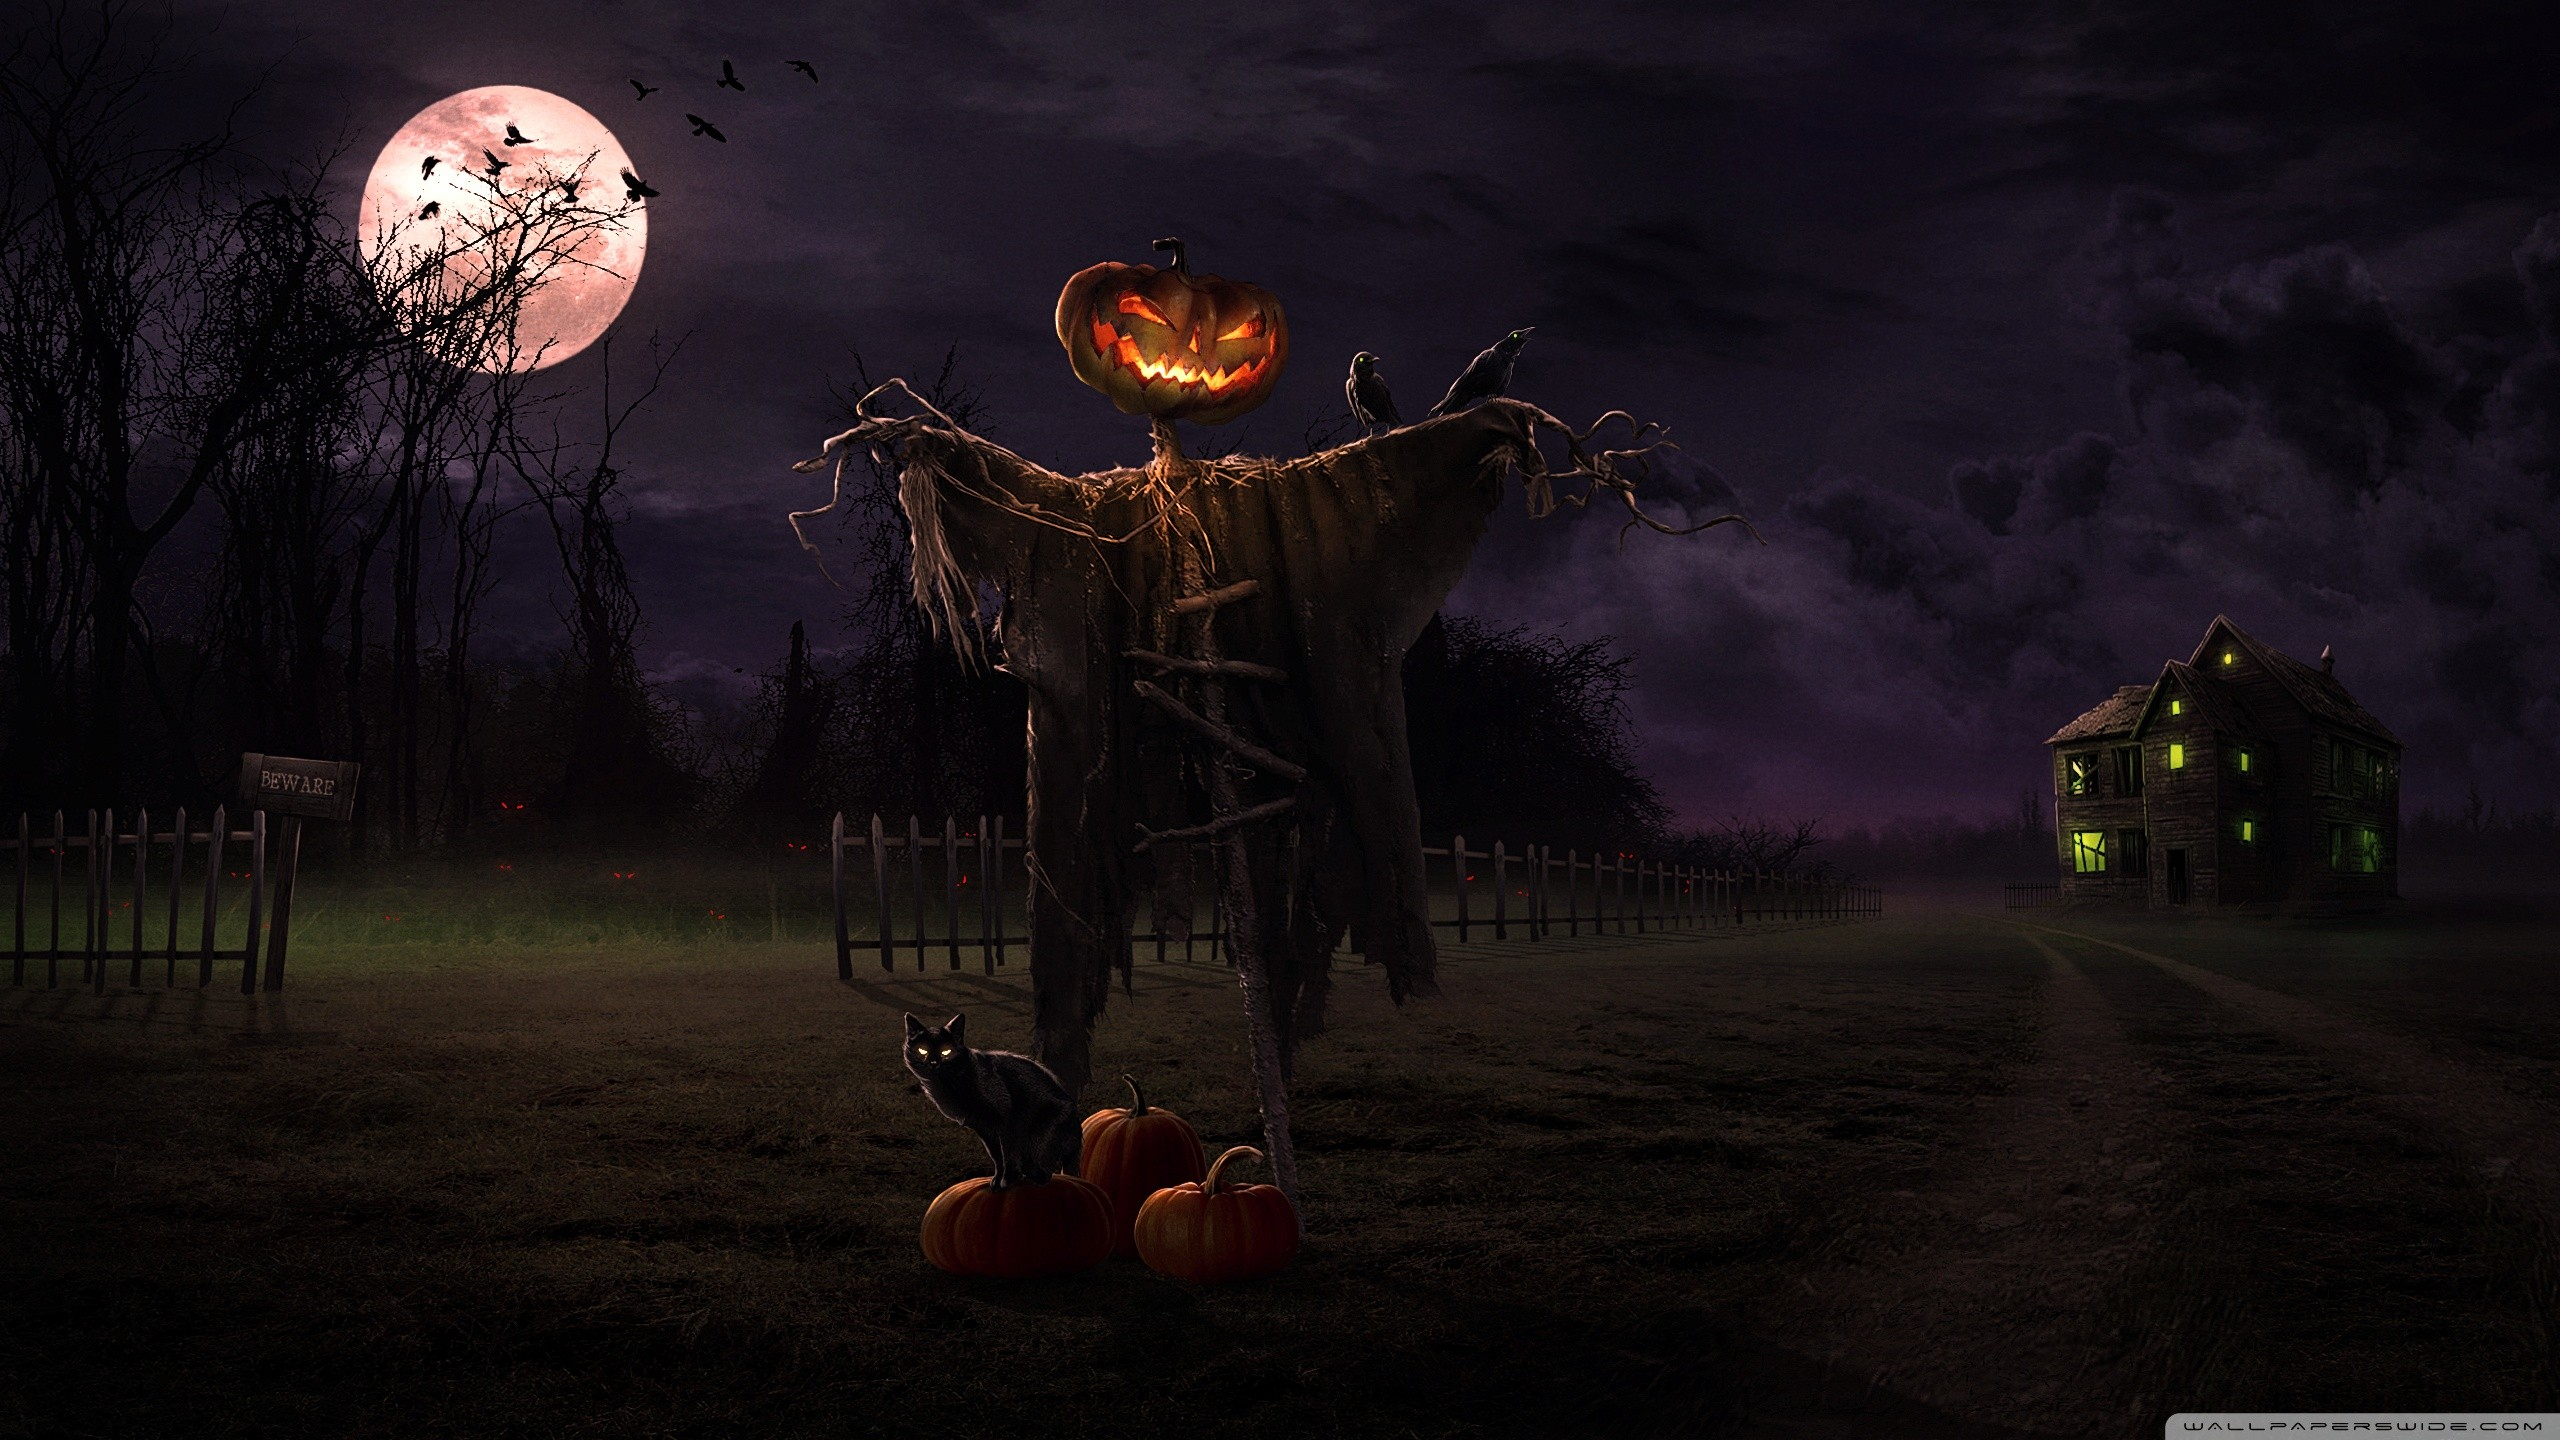 2560x1440 full size halloween desktop wallpaper 2560x1440 for full hd